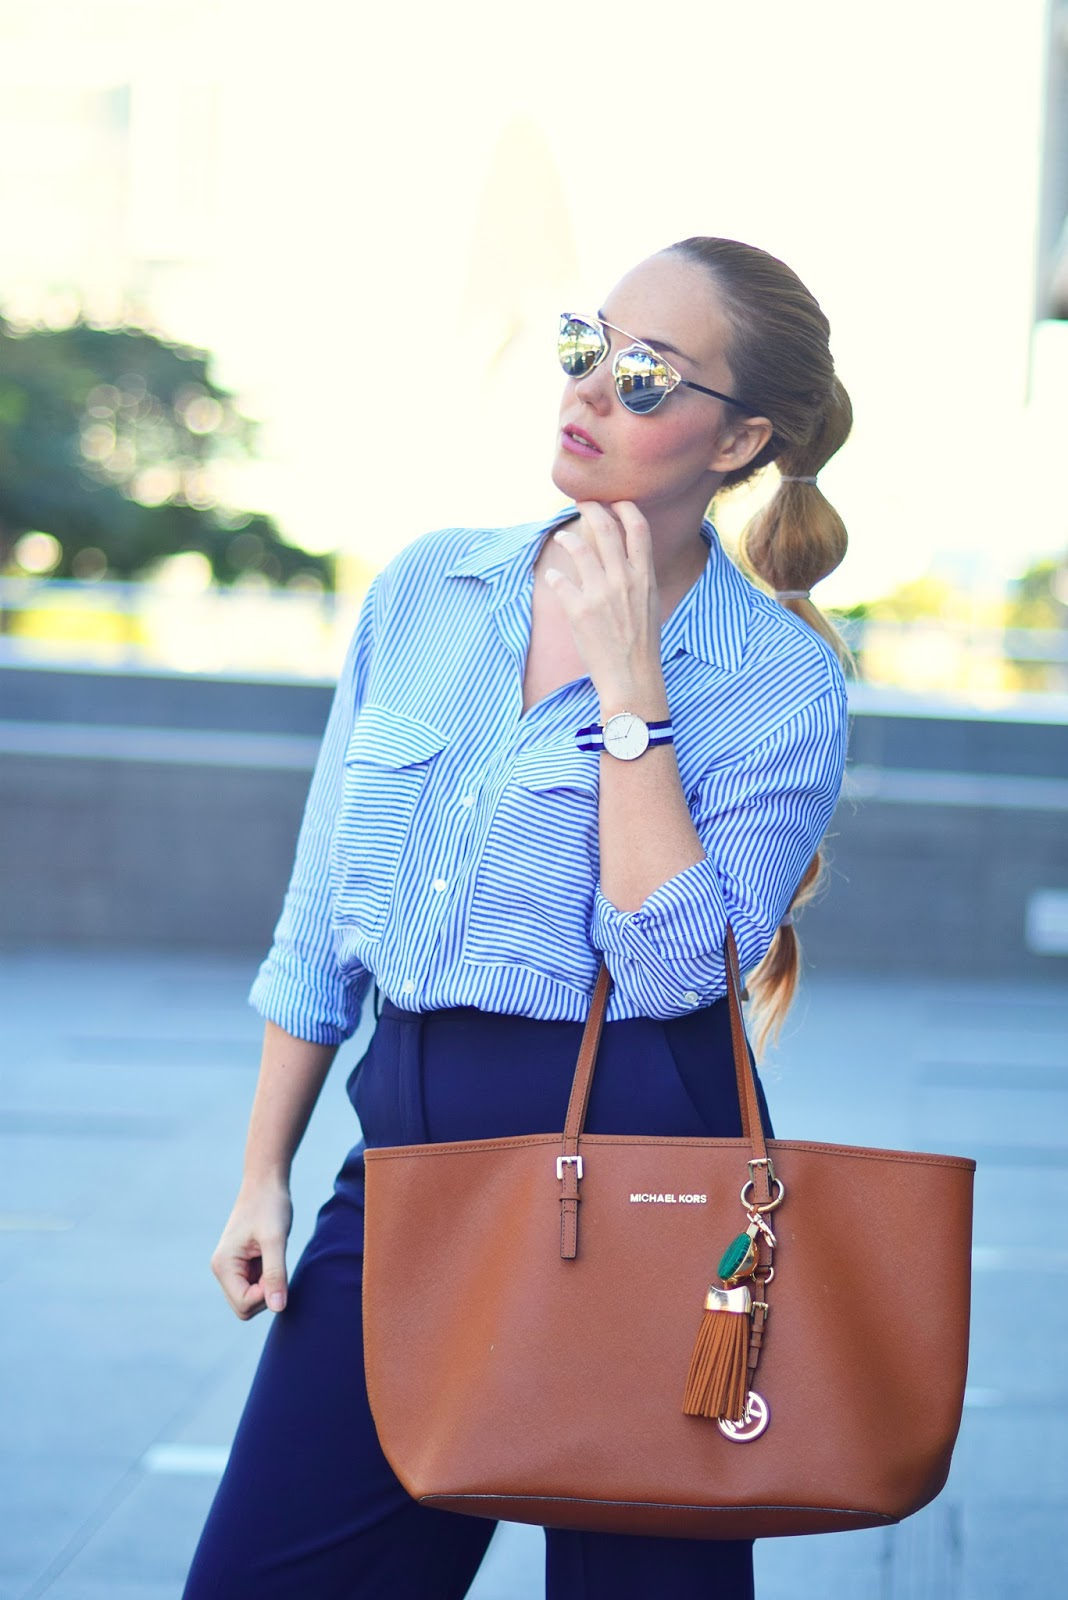 nery hdez, daniel wellington, bubbles braid, optical h, dior , dior so real,